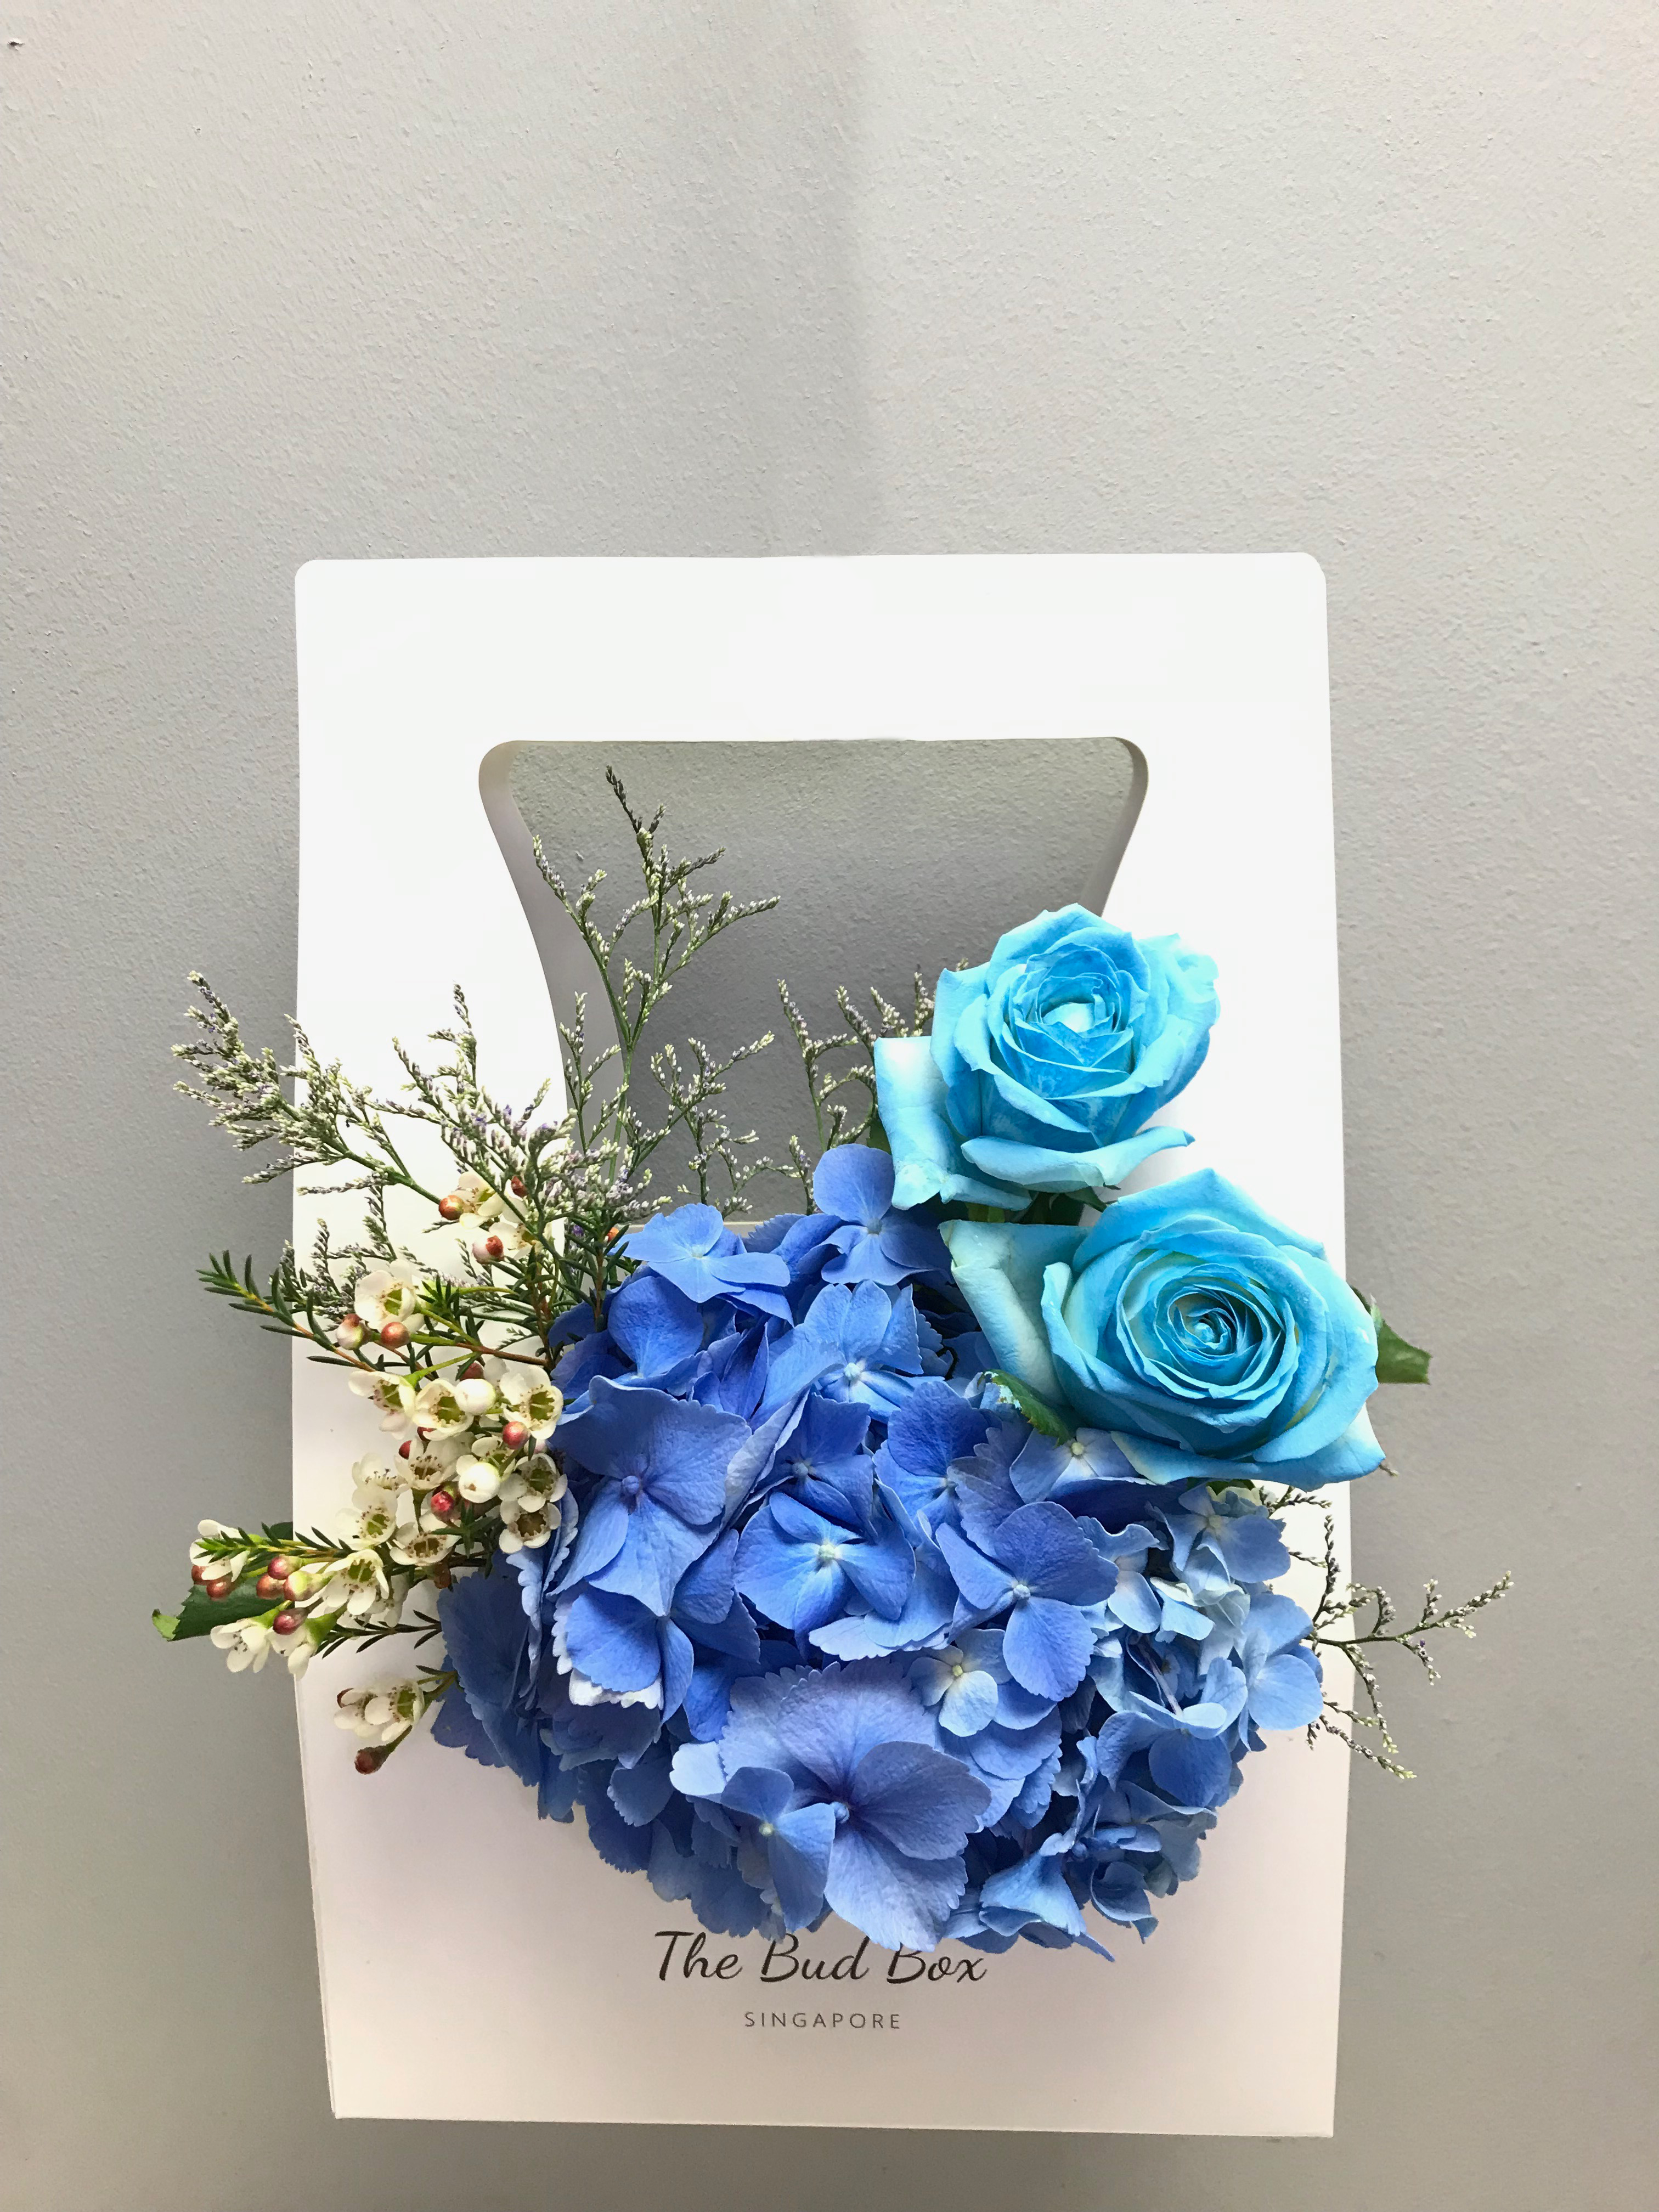 15TH & 16TH JUNE (Blue Hydrangea & Roses) (With images